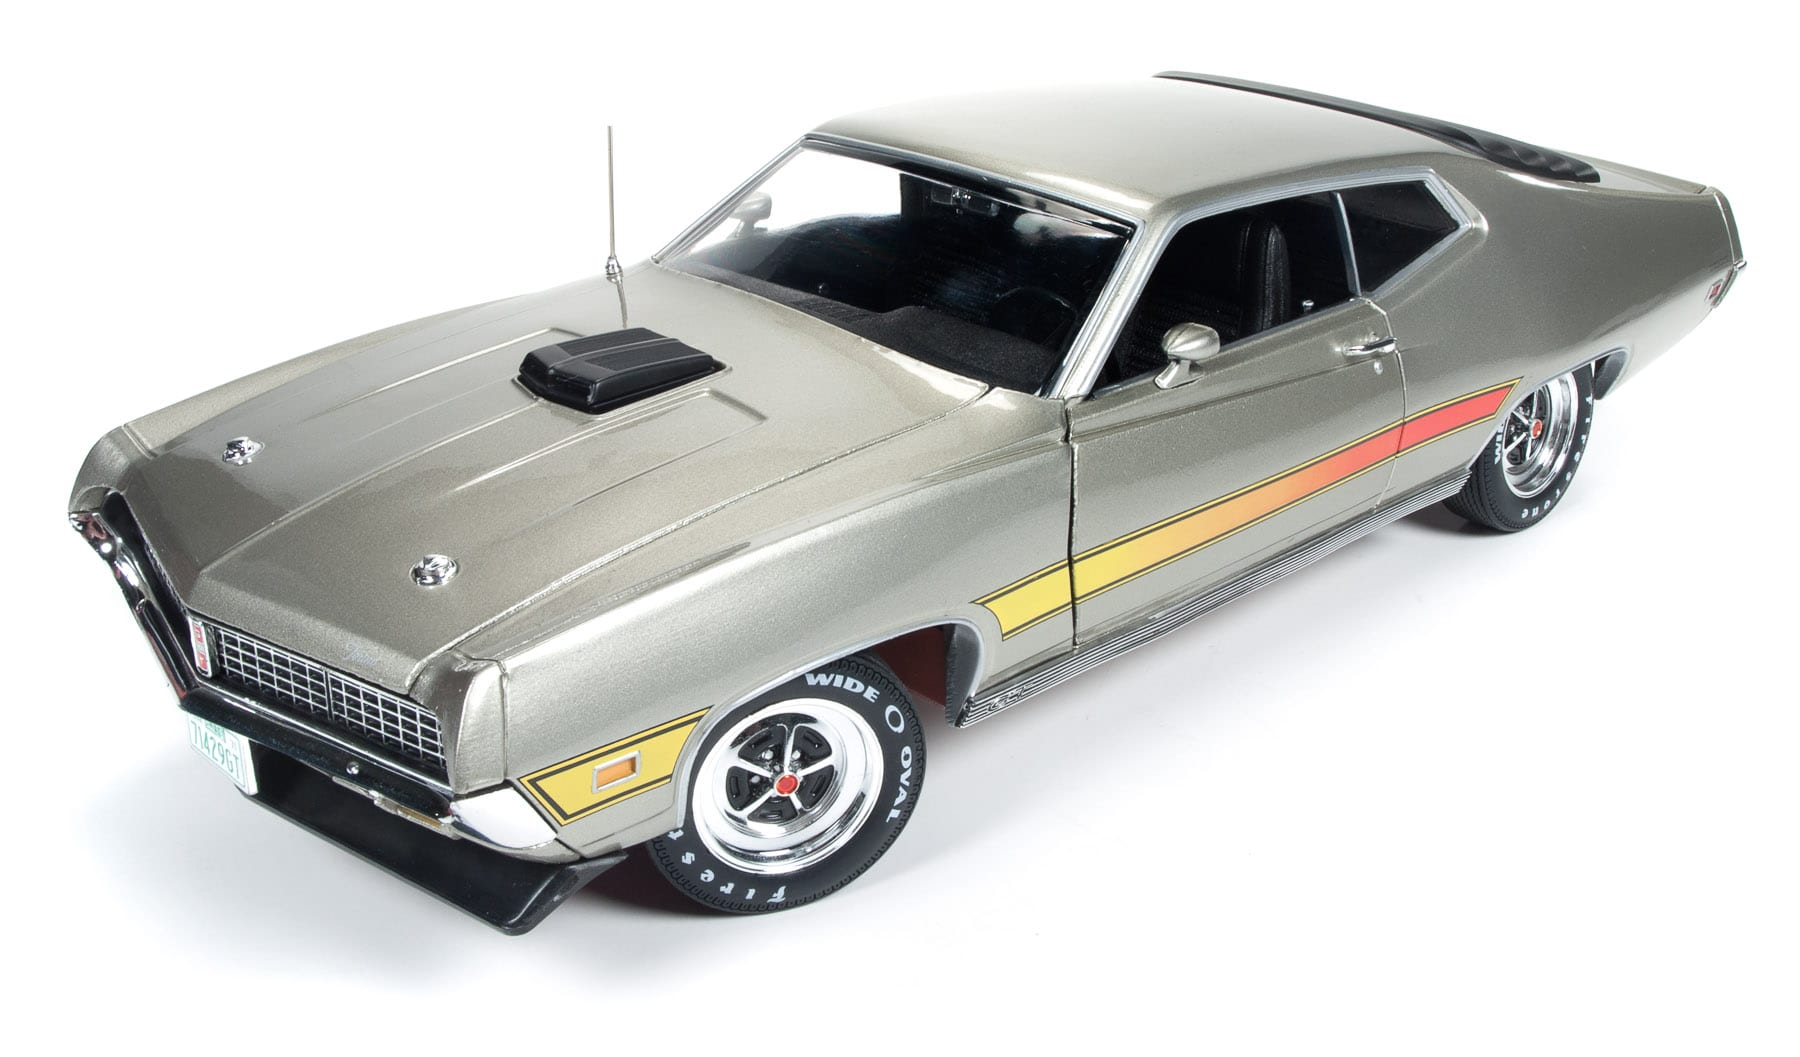 1971 Ford Torino GT | Round2 I Am An American Ford on life an american, last name american, it is an american, it's an american, grace an american, act like an american, being an american, she is an american, just be an american,